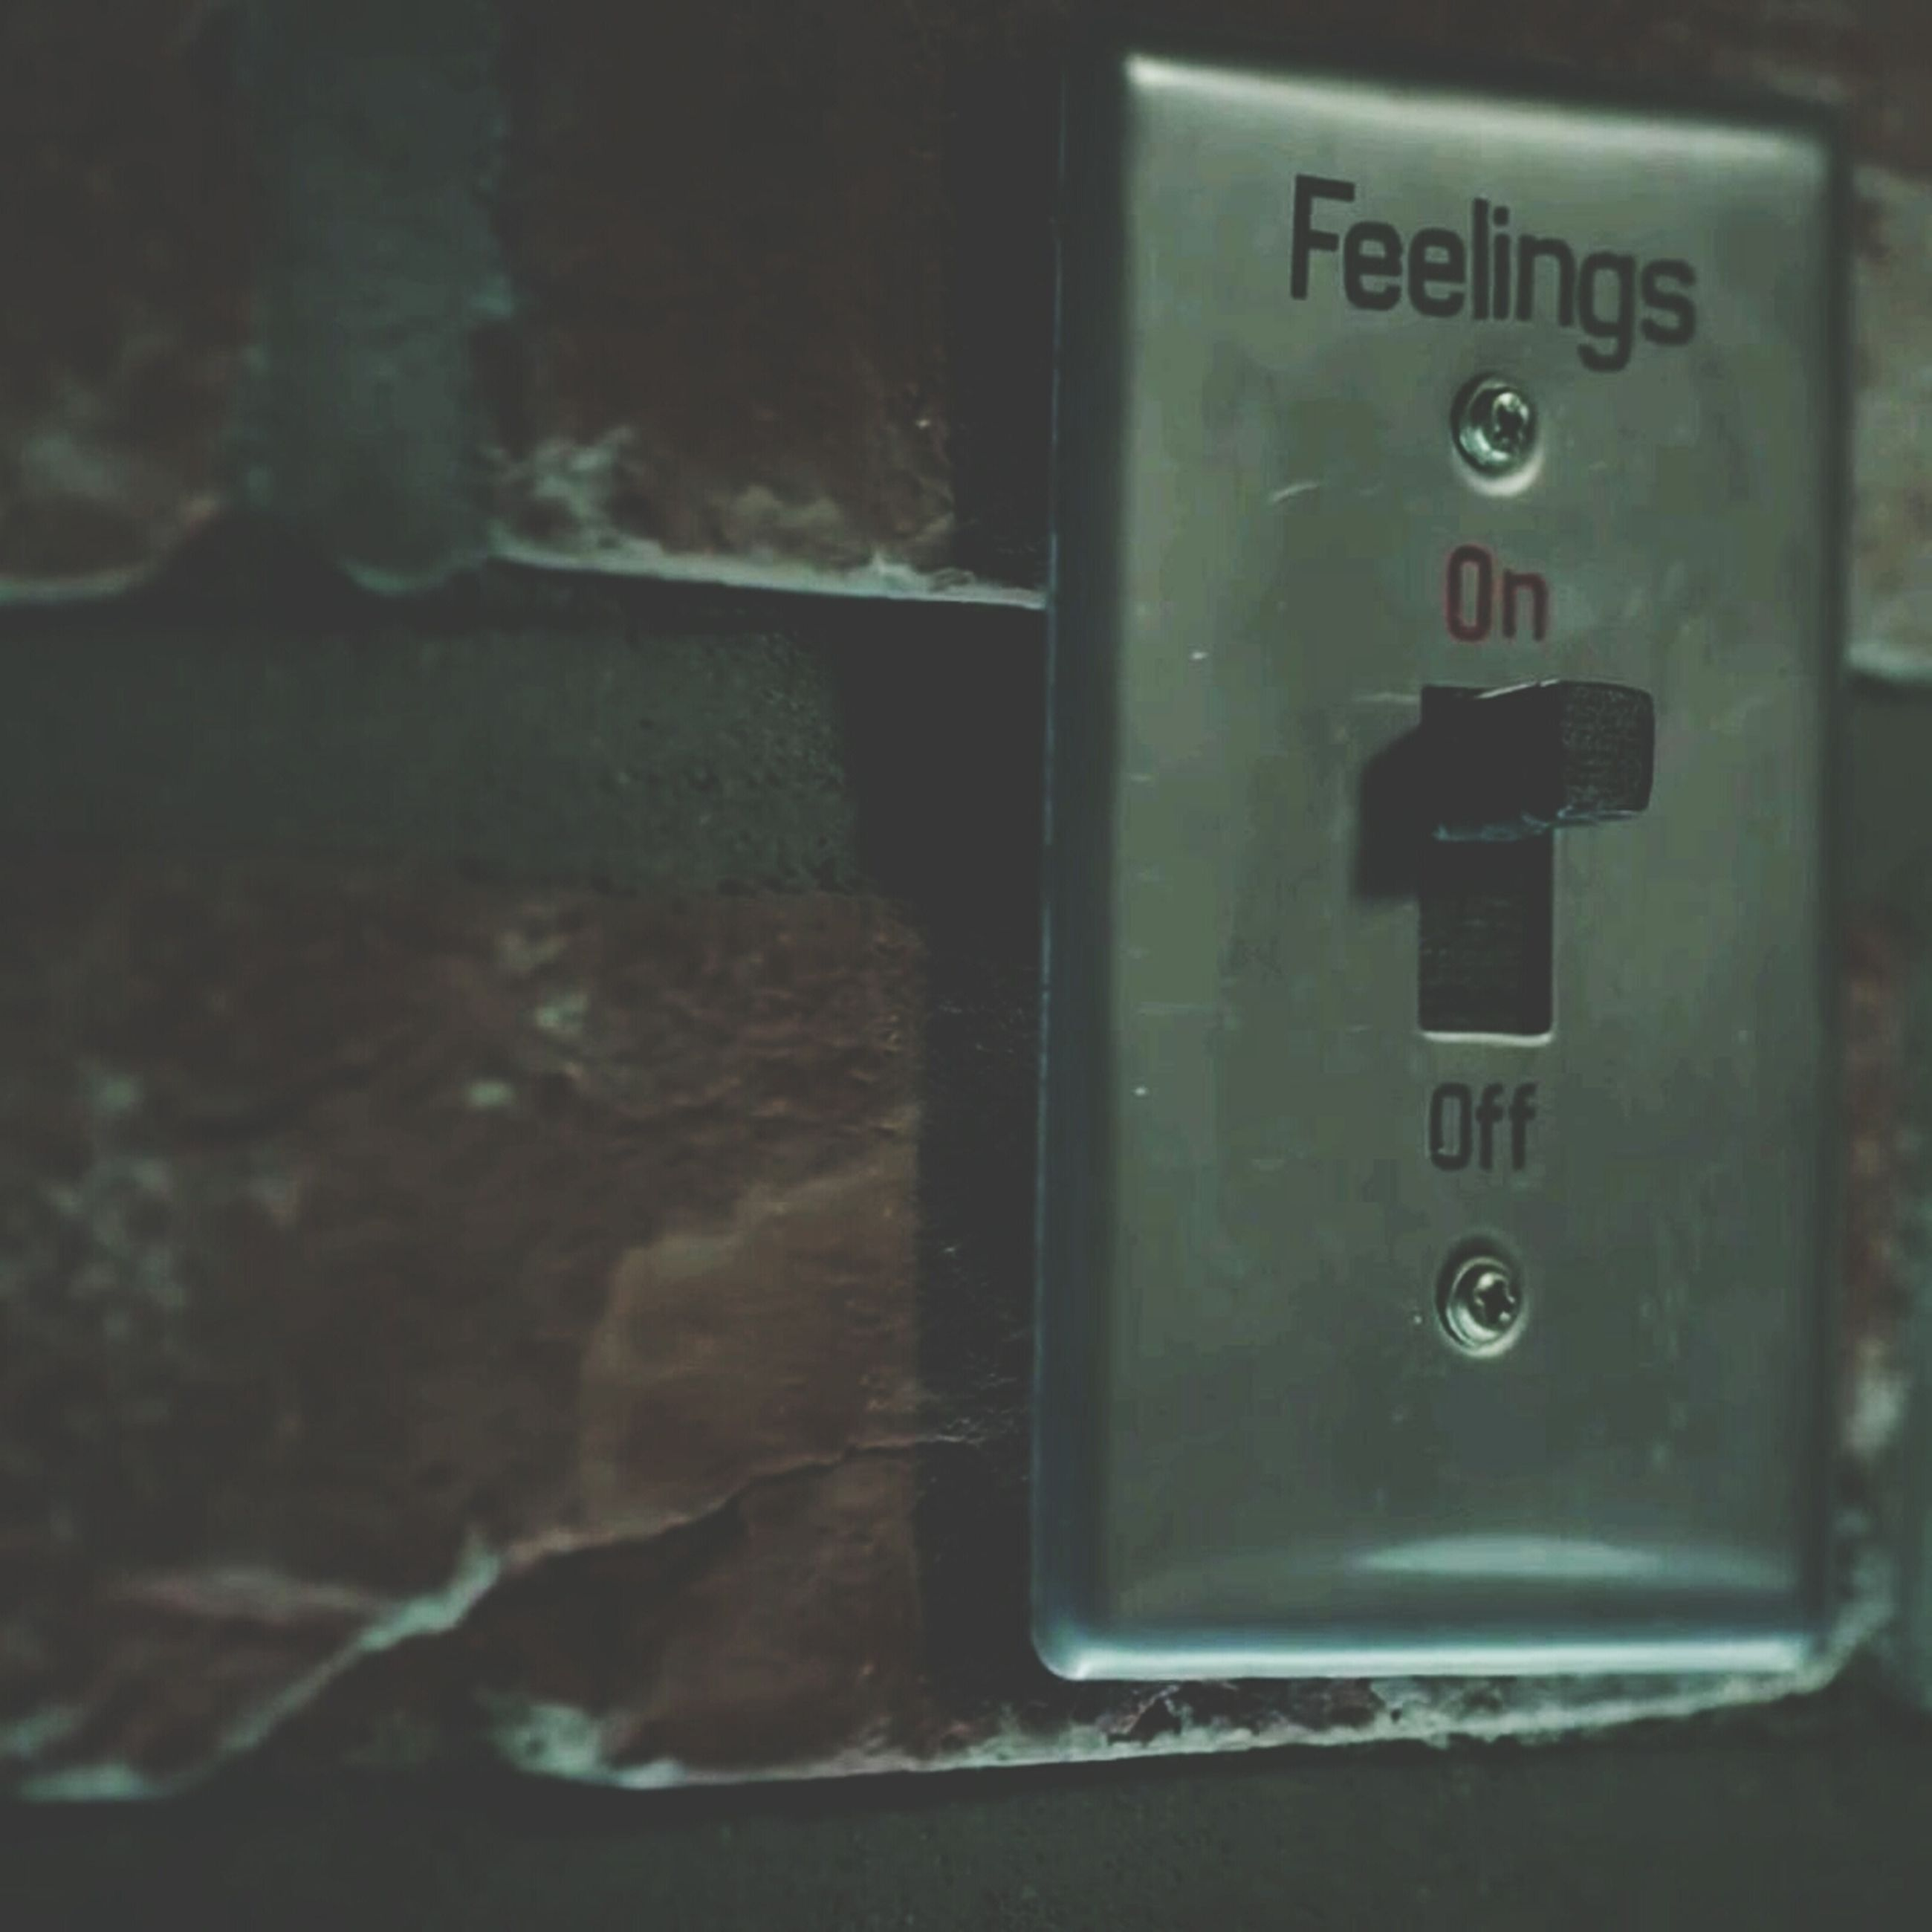 communication, text, close-up, indoors, western script, metal, old, number, old-fashioned, technology, no people, connection, door, wall - building feature, retro styled, capital letter, metallic, day, rusty, still life